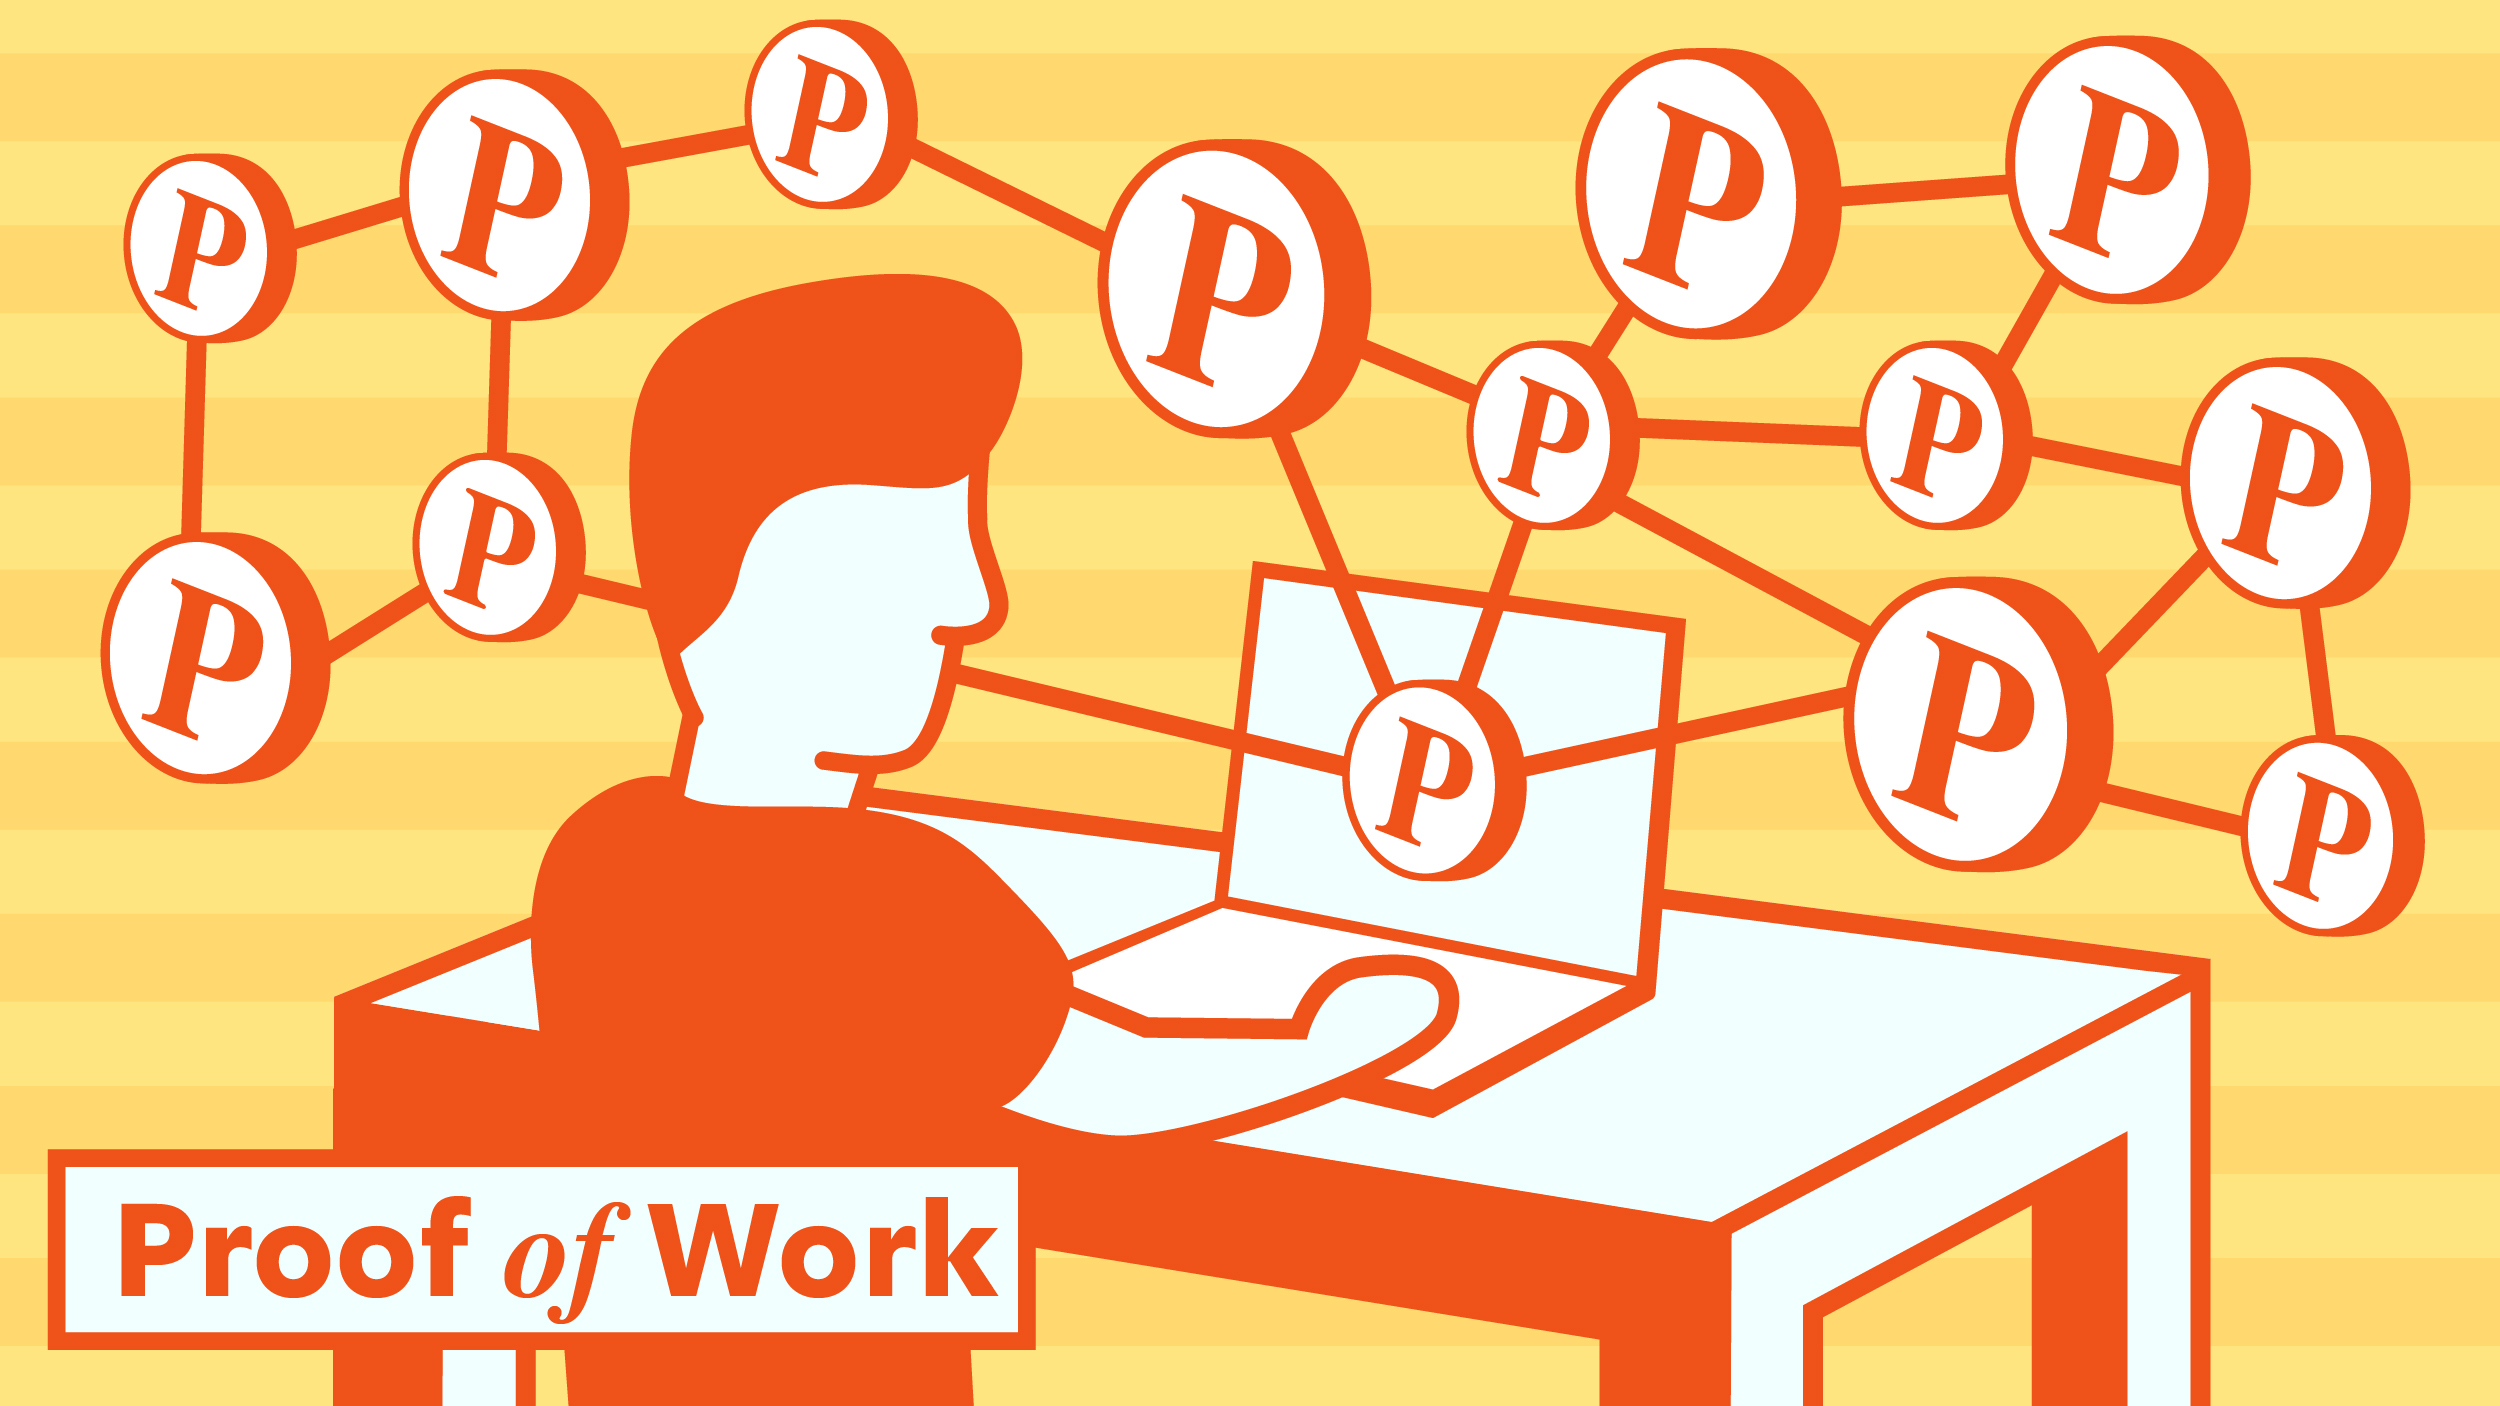 Proof of Work: Improving upon Bitcoin's mining pools can go